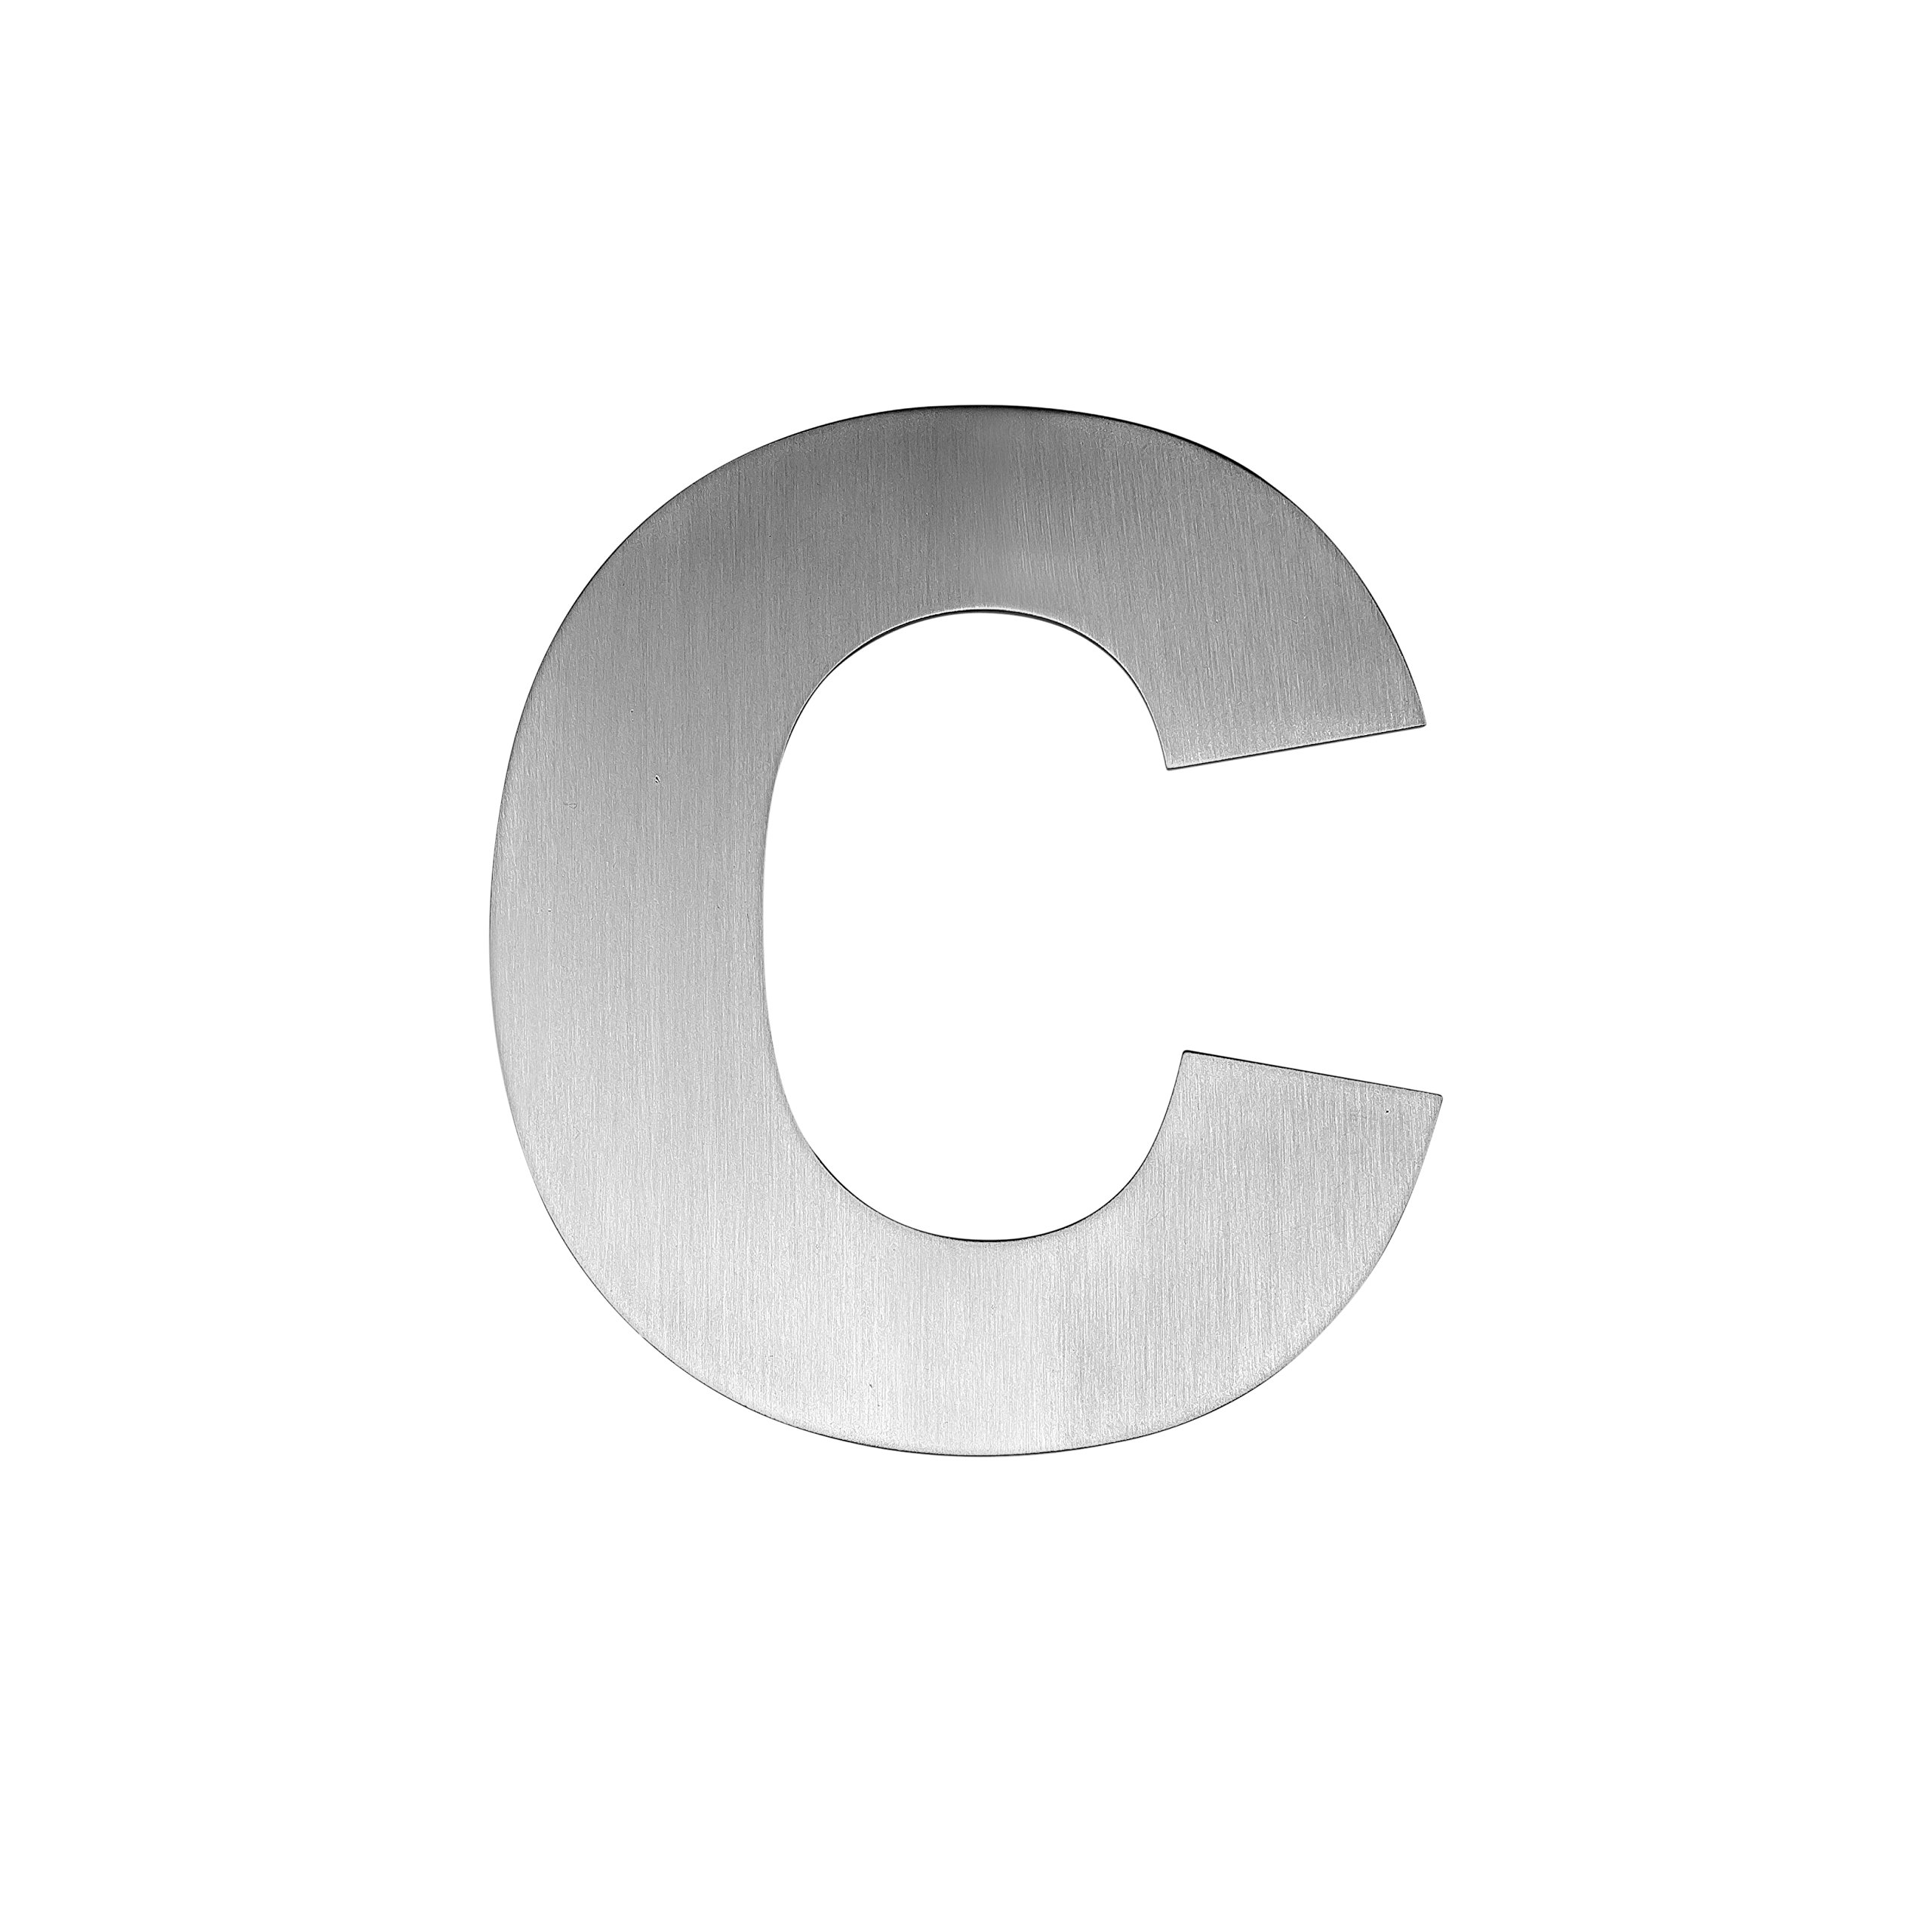 QT Modern House Number - EXTRA LARGE 7.5 Inch - Brushed Stainless Steel (Letter c), Floating Appearance, Easy to install and made of solid 304